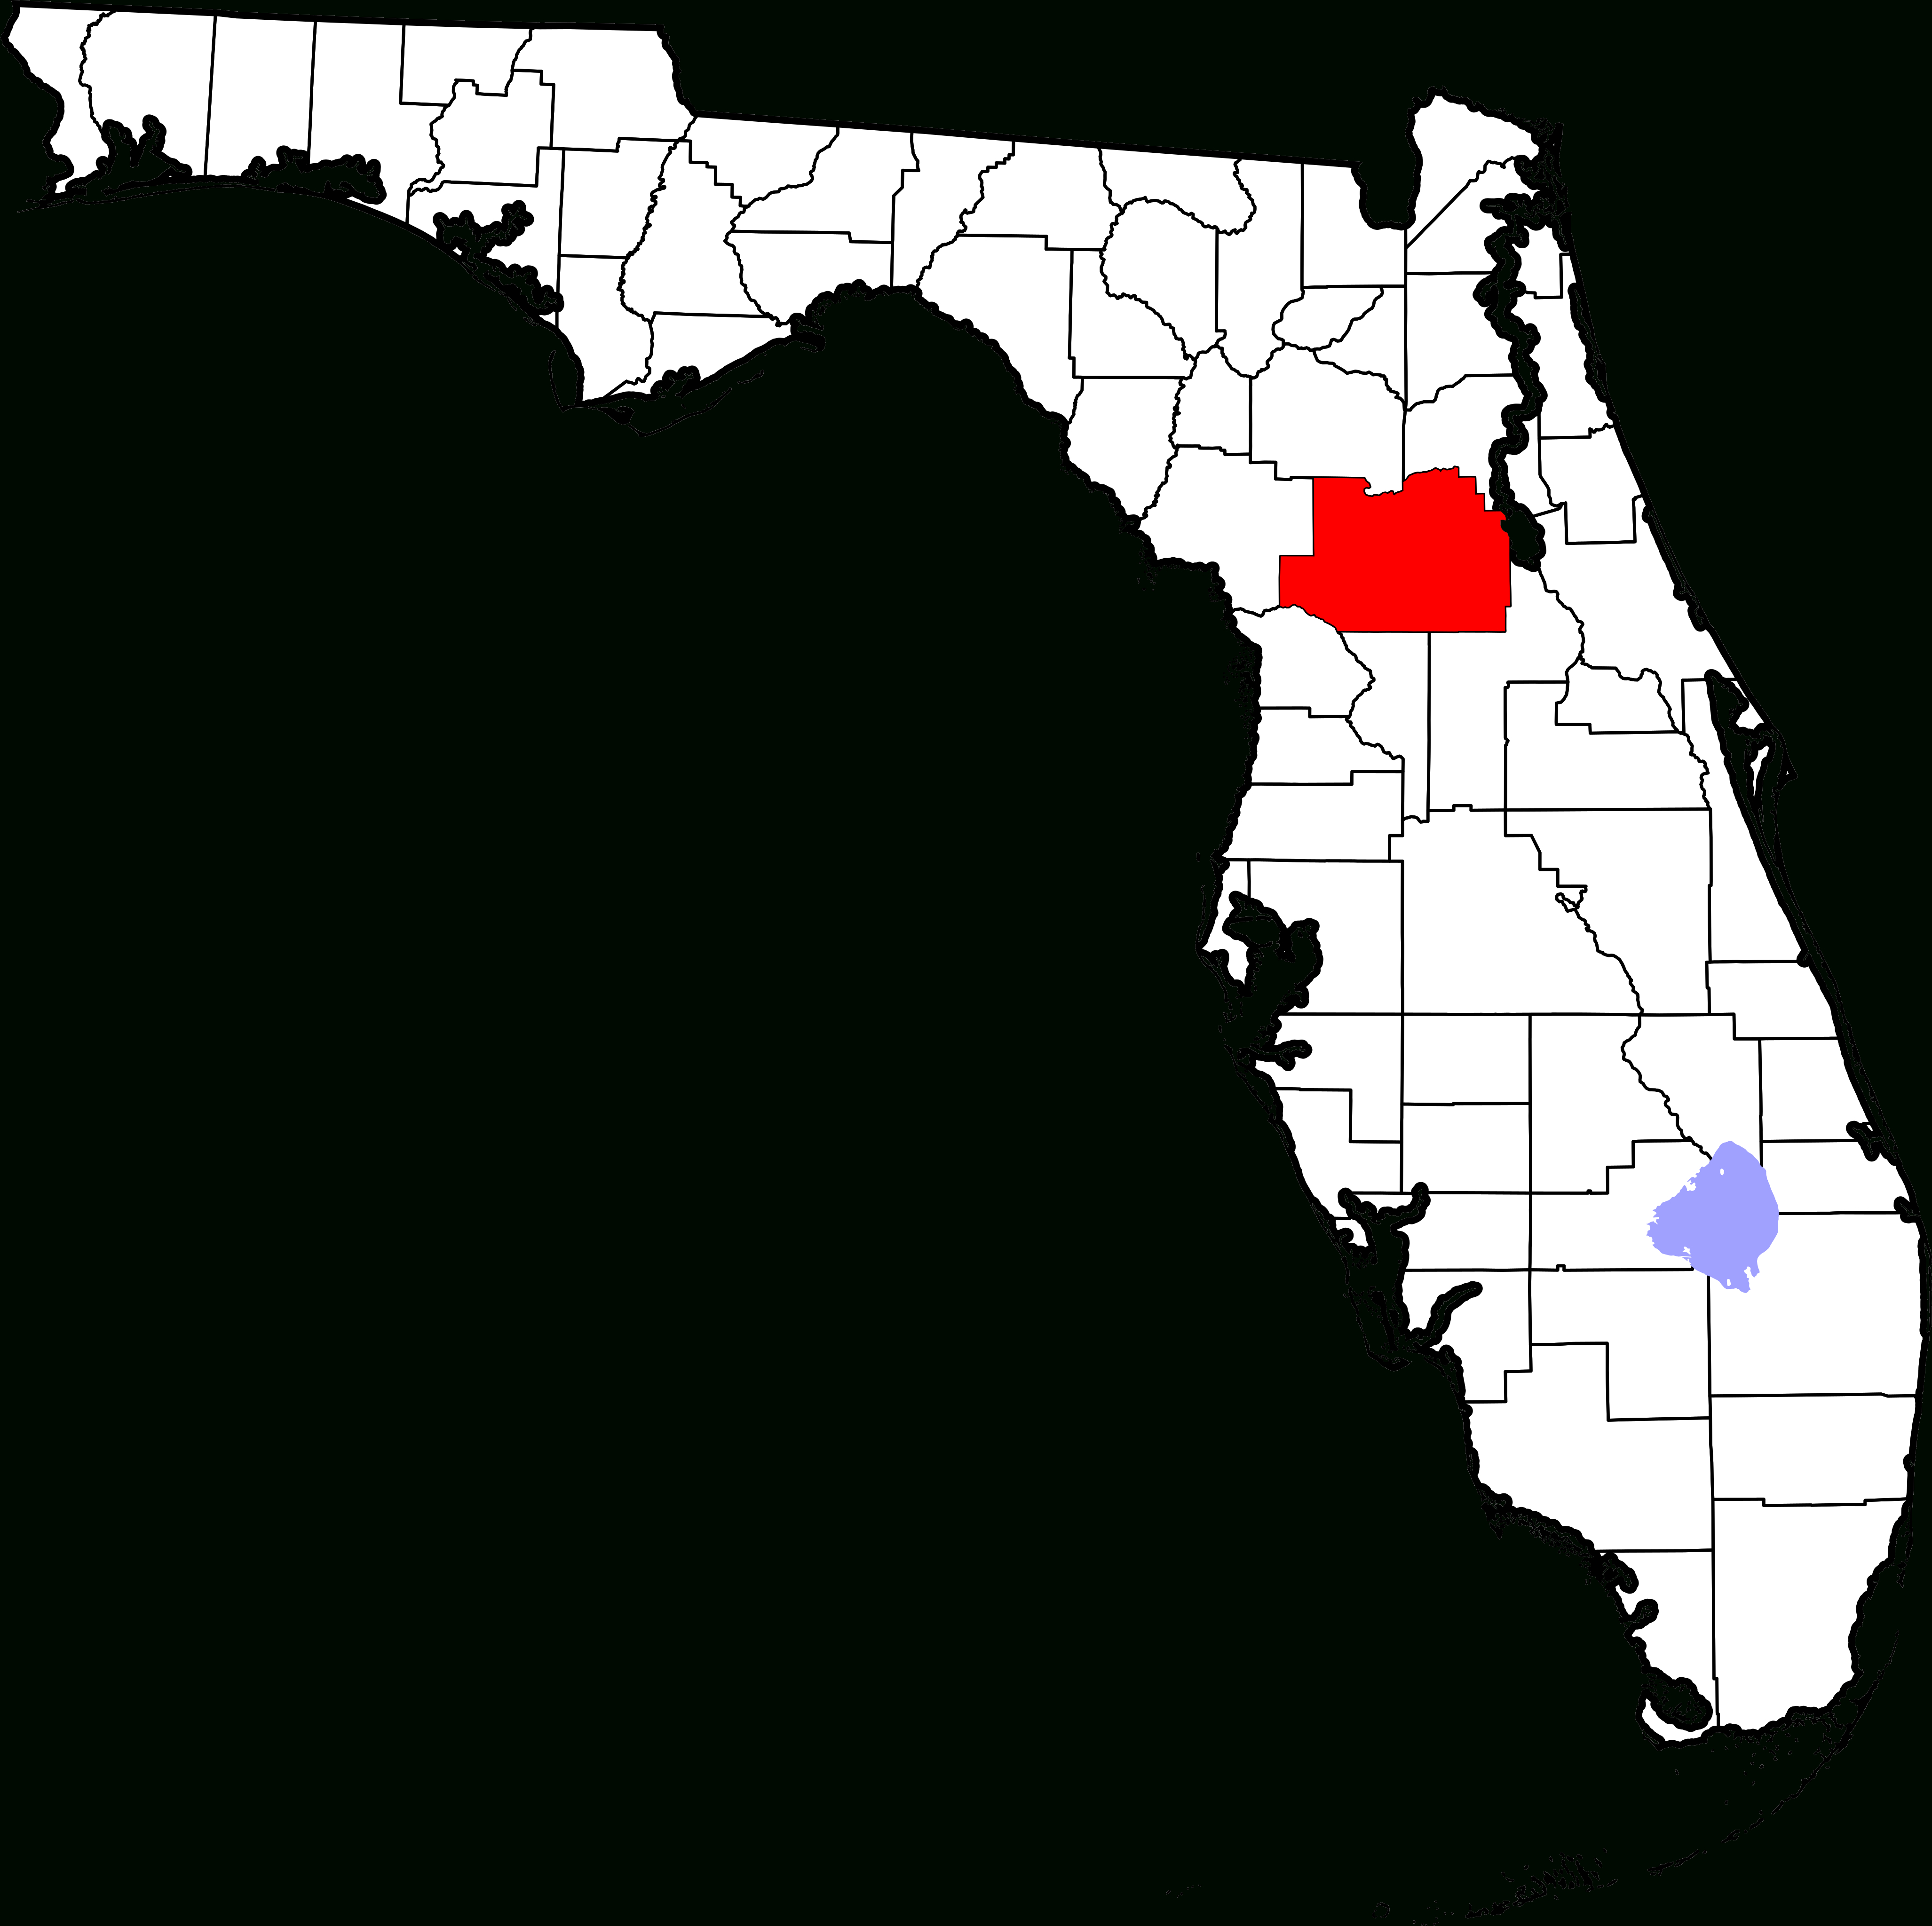 File:map Of Florida Highlighting Marion County.svg - Wikipedia - Belleview Florida Map